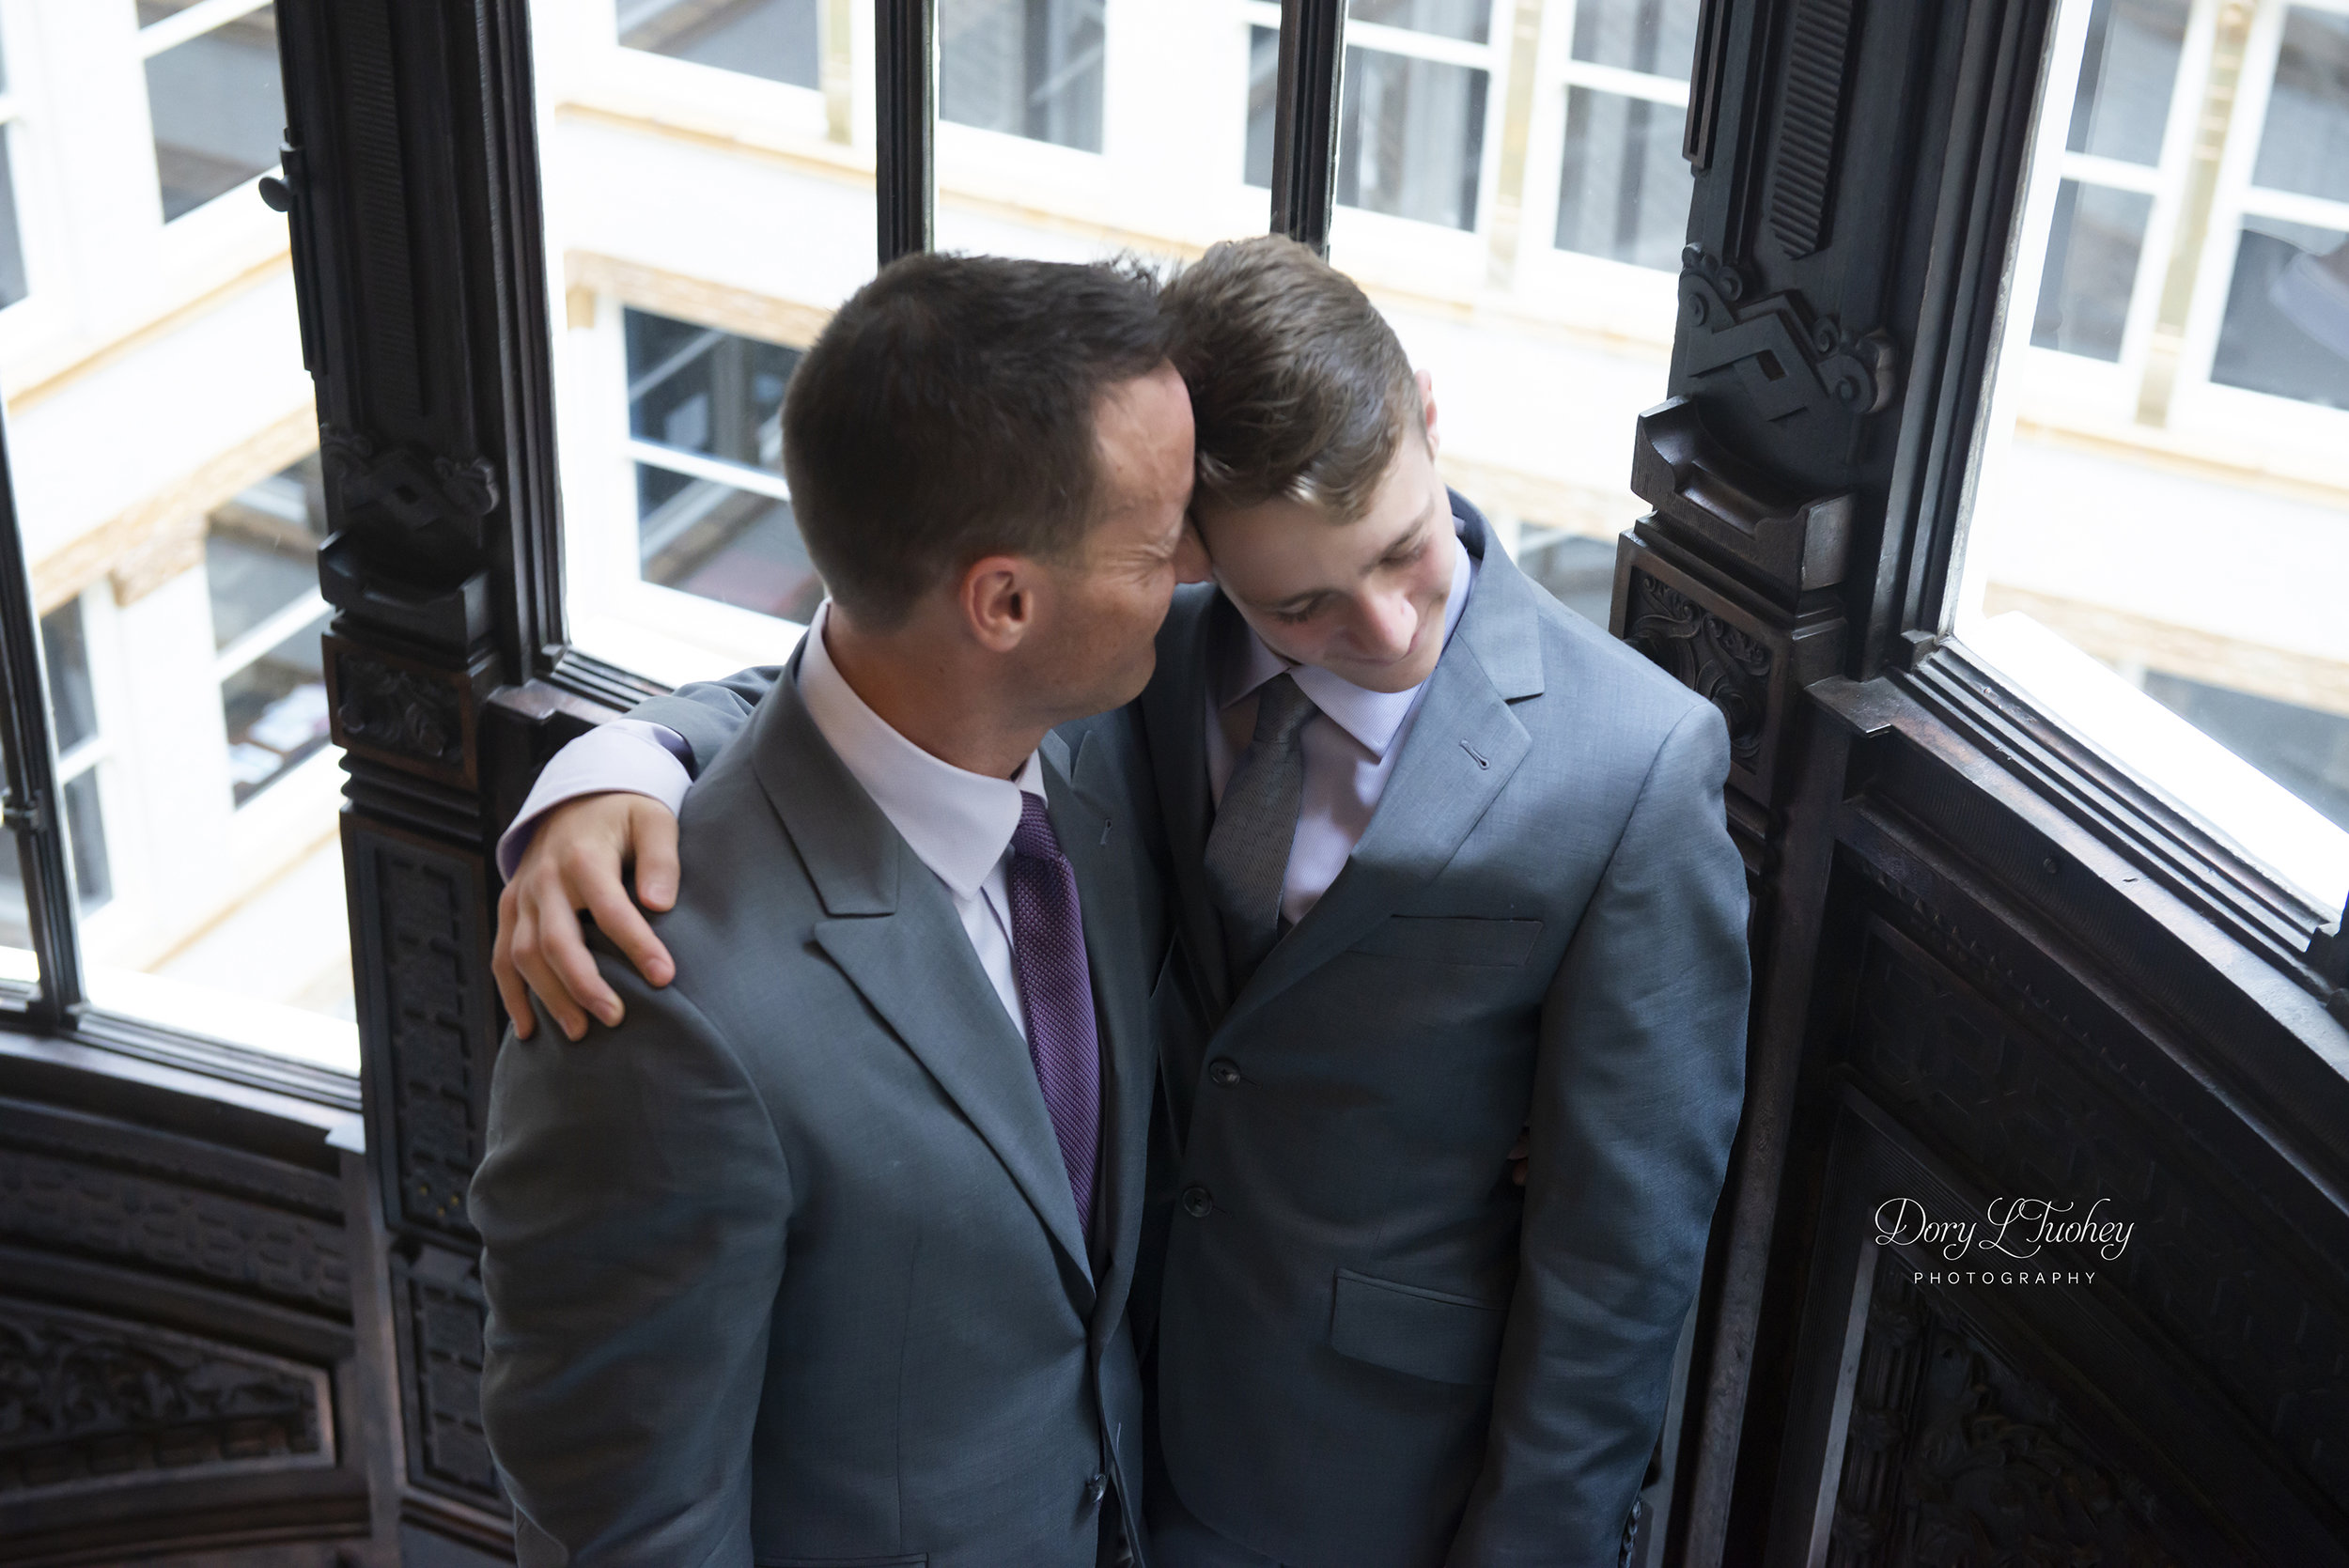 Rookery_chicago_dory_photographer_wedding_stairs_bhldn_love_dawson_05.jpg